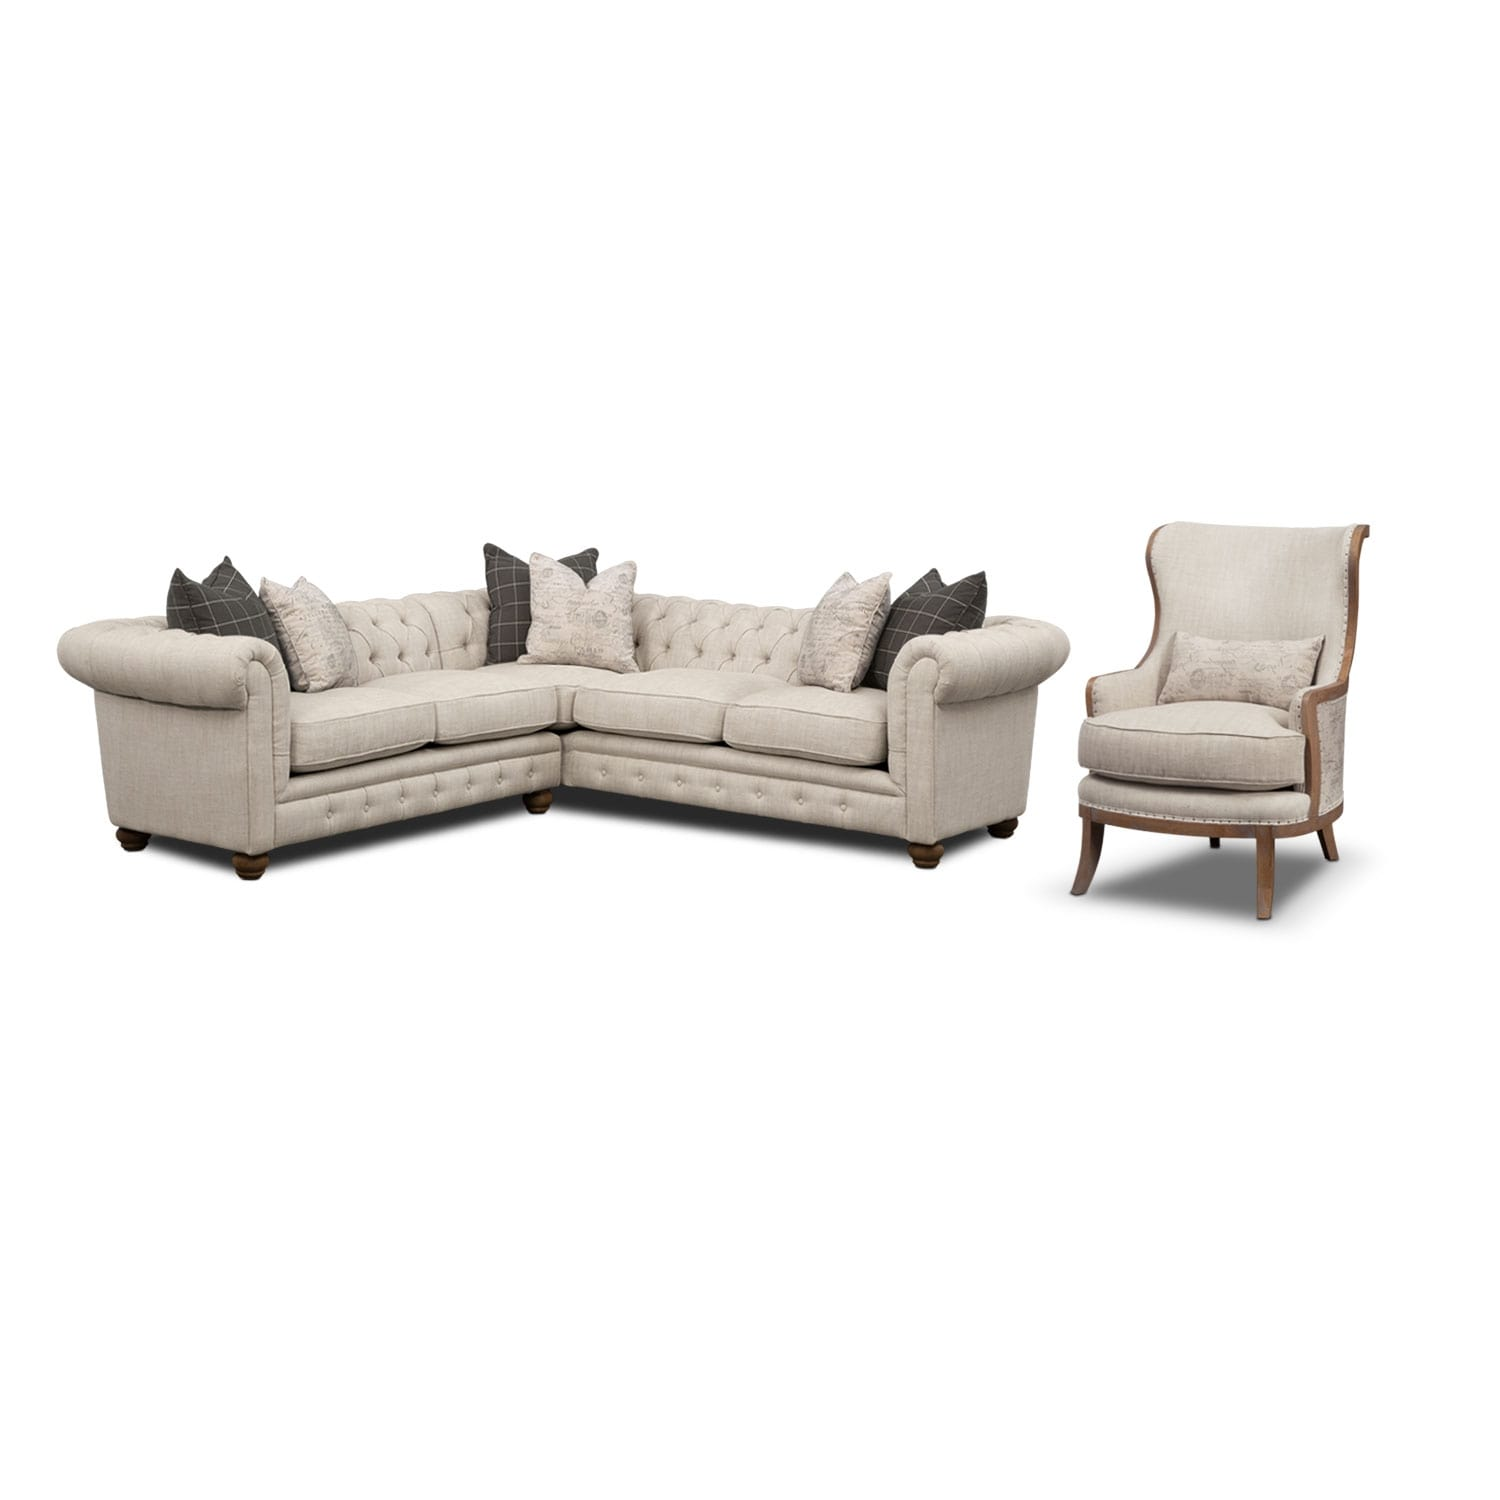 Madeline 2-Piece Sectional and Framed Accent Chair Set - Beige